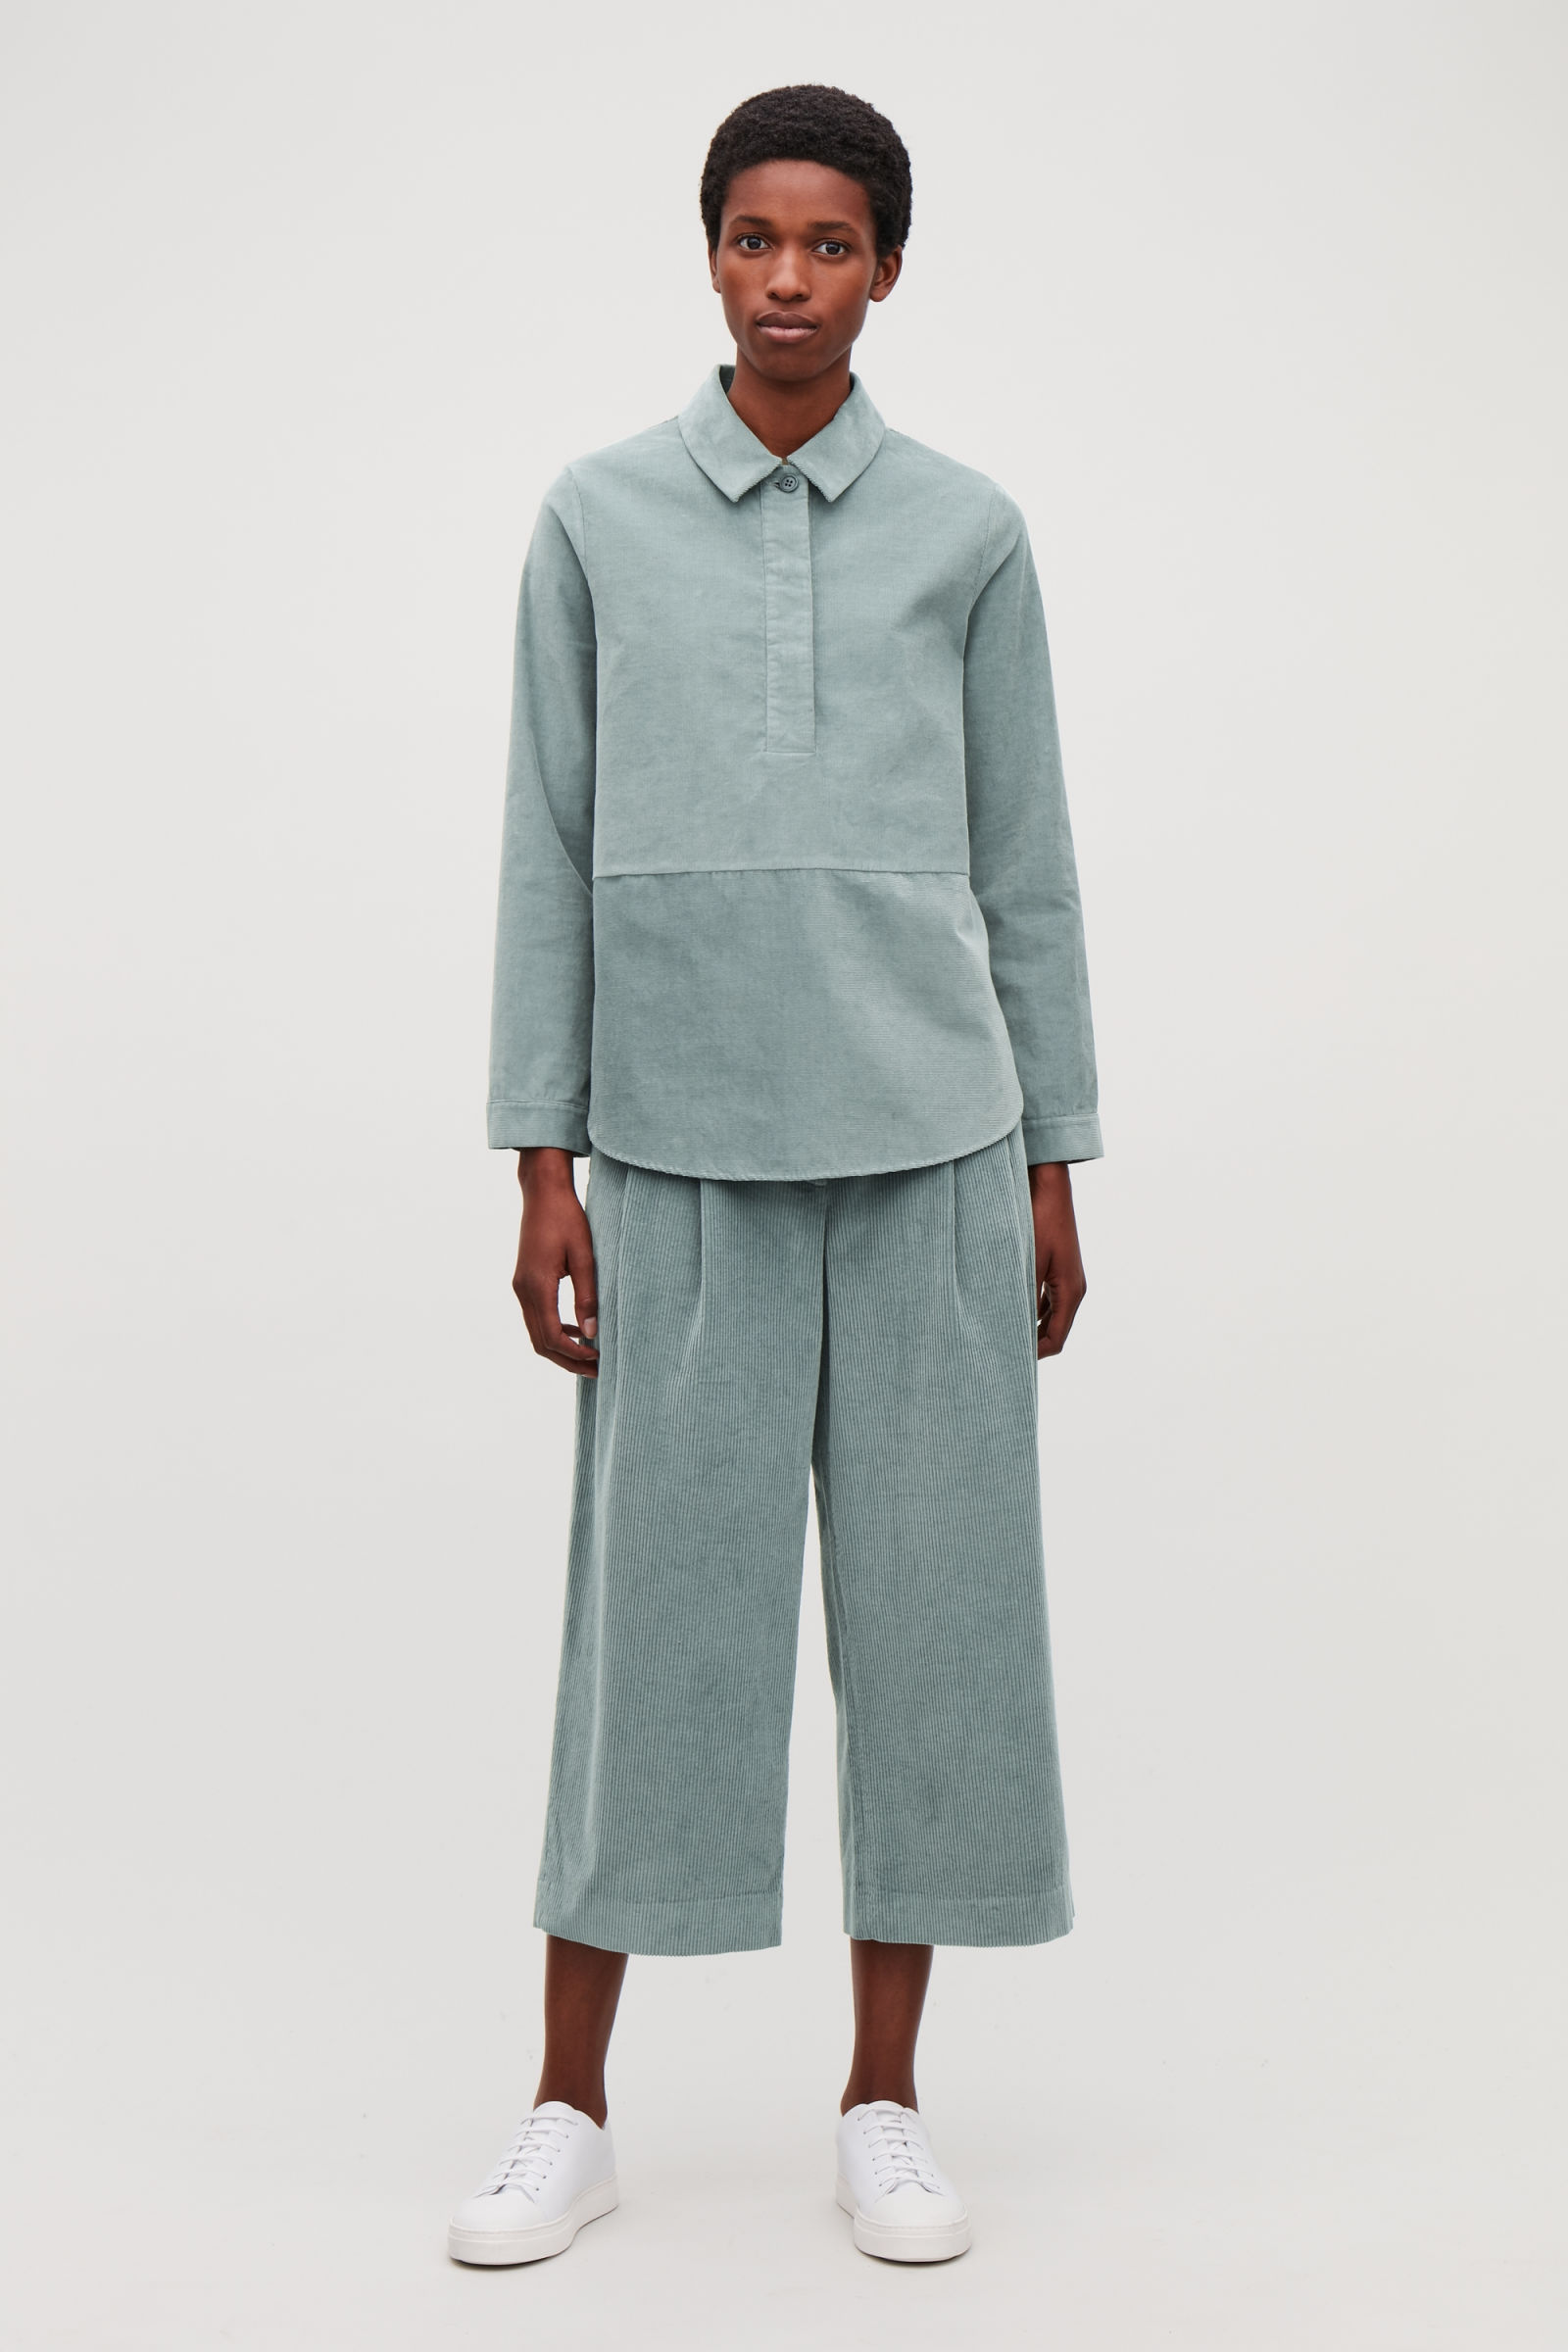 ocean foam - /outfit by cos stores